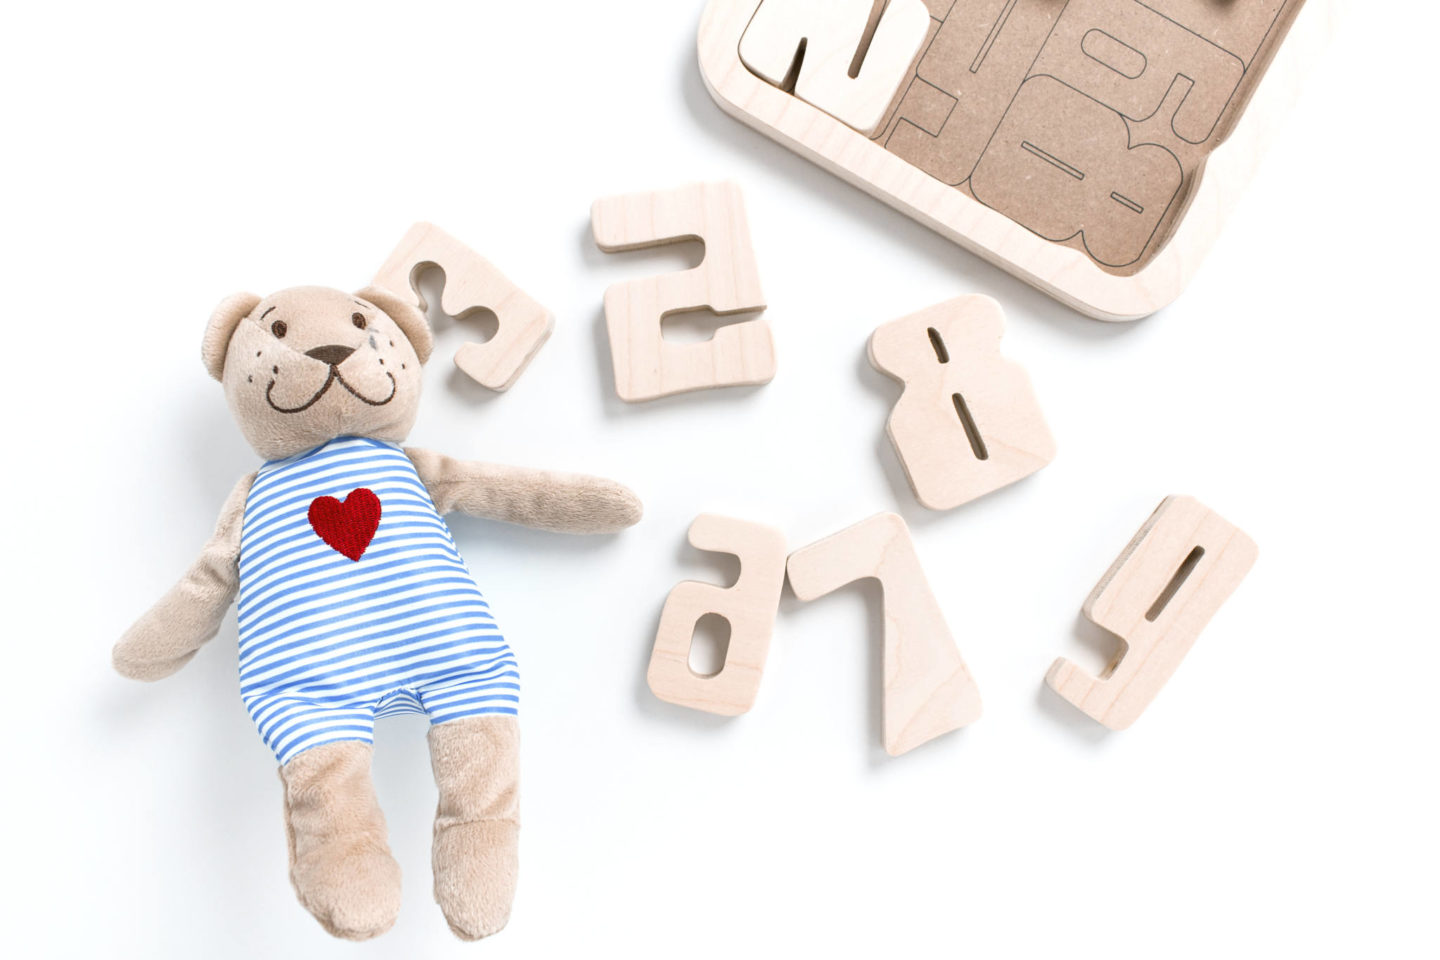 teddy bear and wooden puzzle